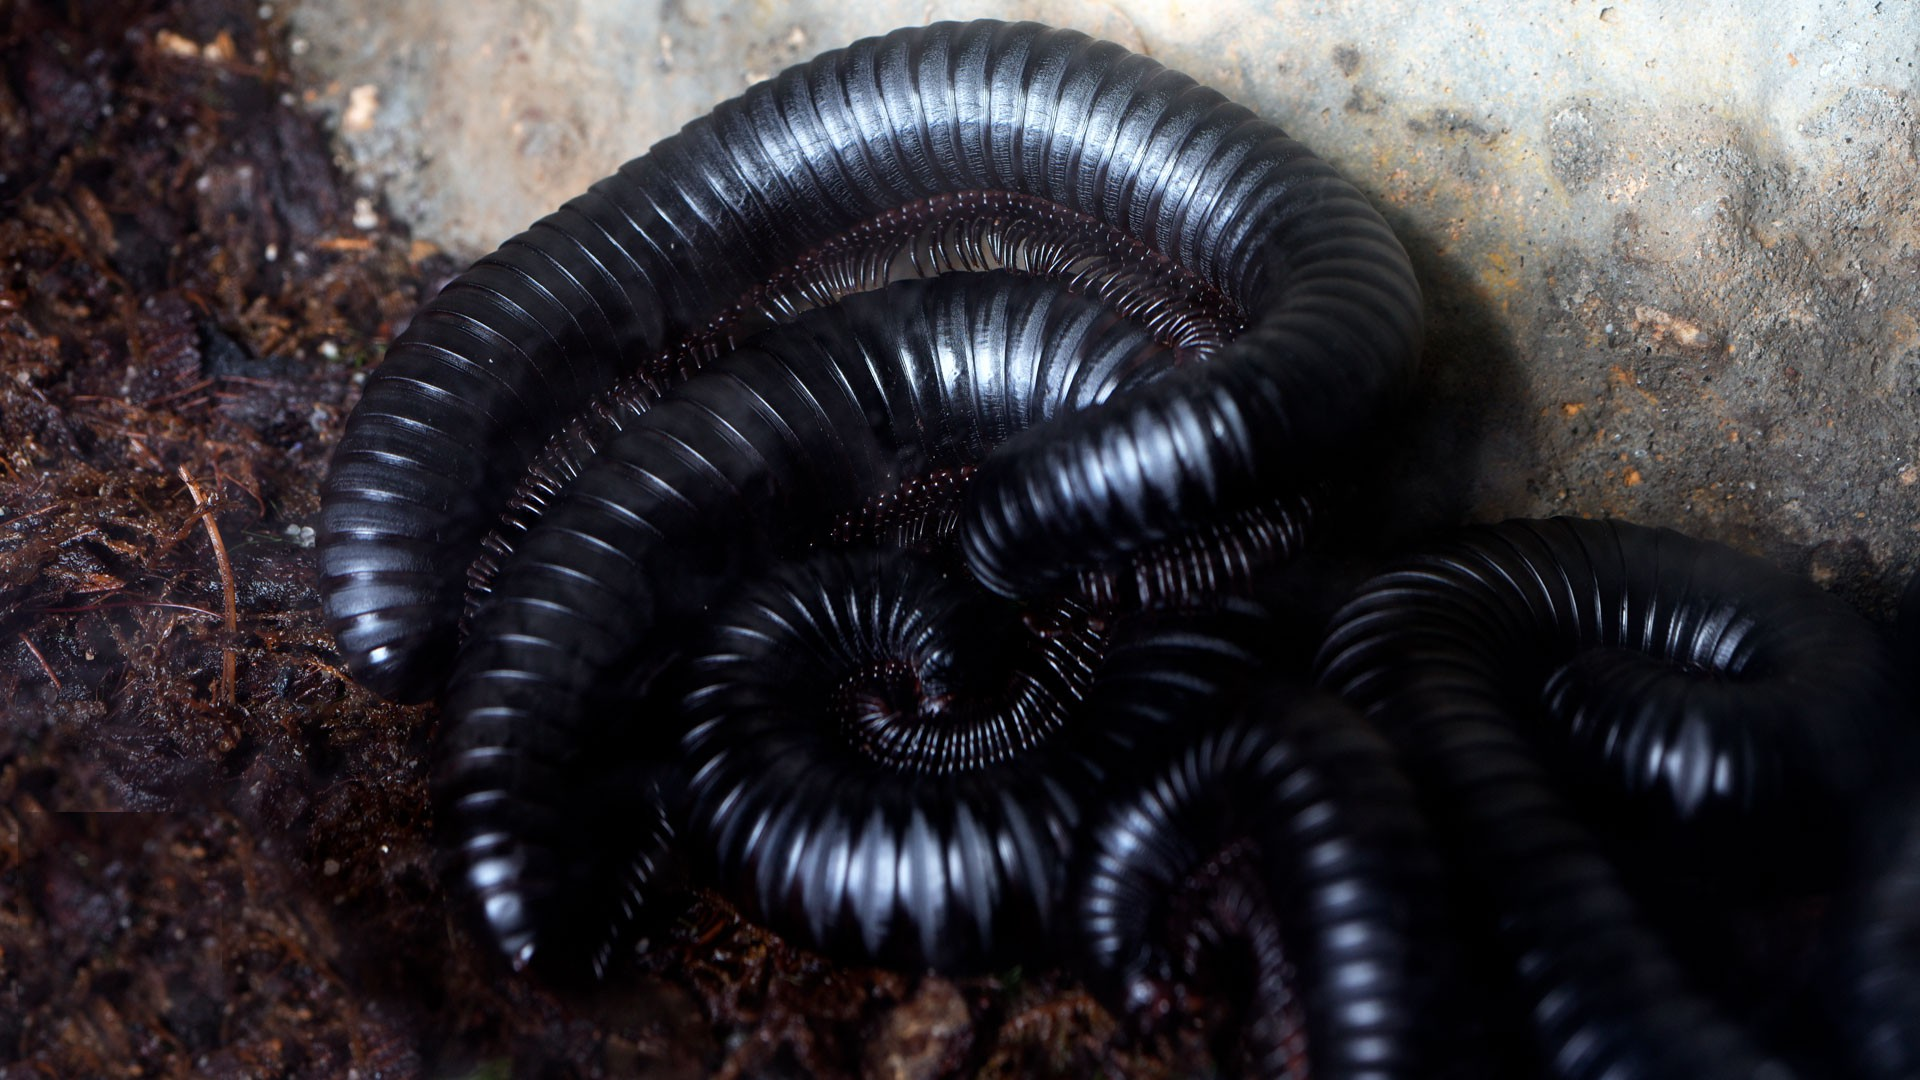 Giant African Millipede